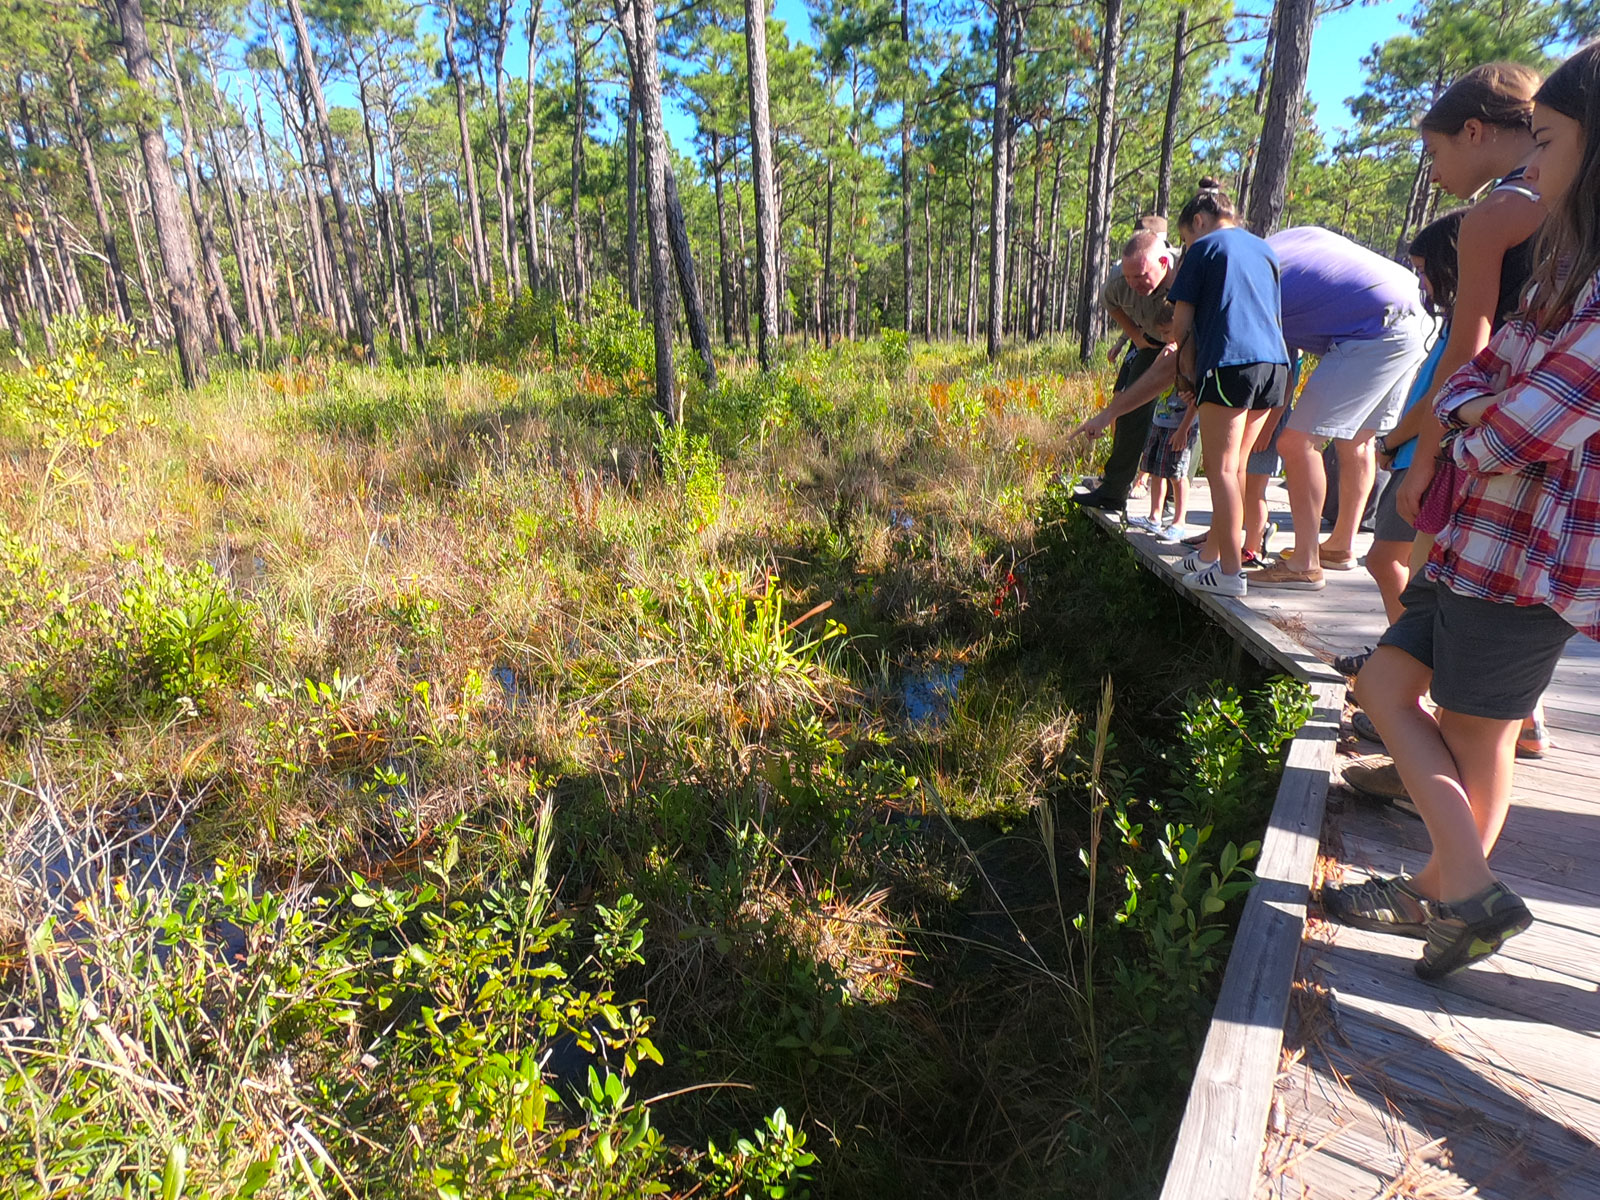 Ranger leads a group of visitors on the Flytrap Trail at Carolina Beach State Park in North Carolina